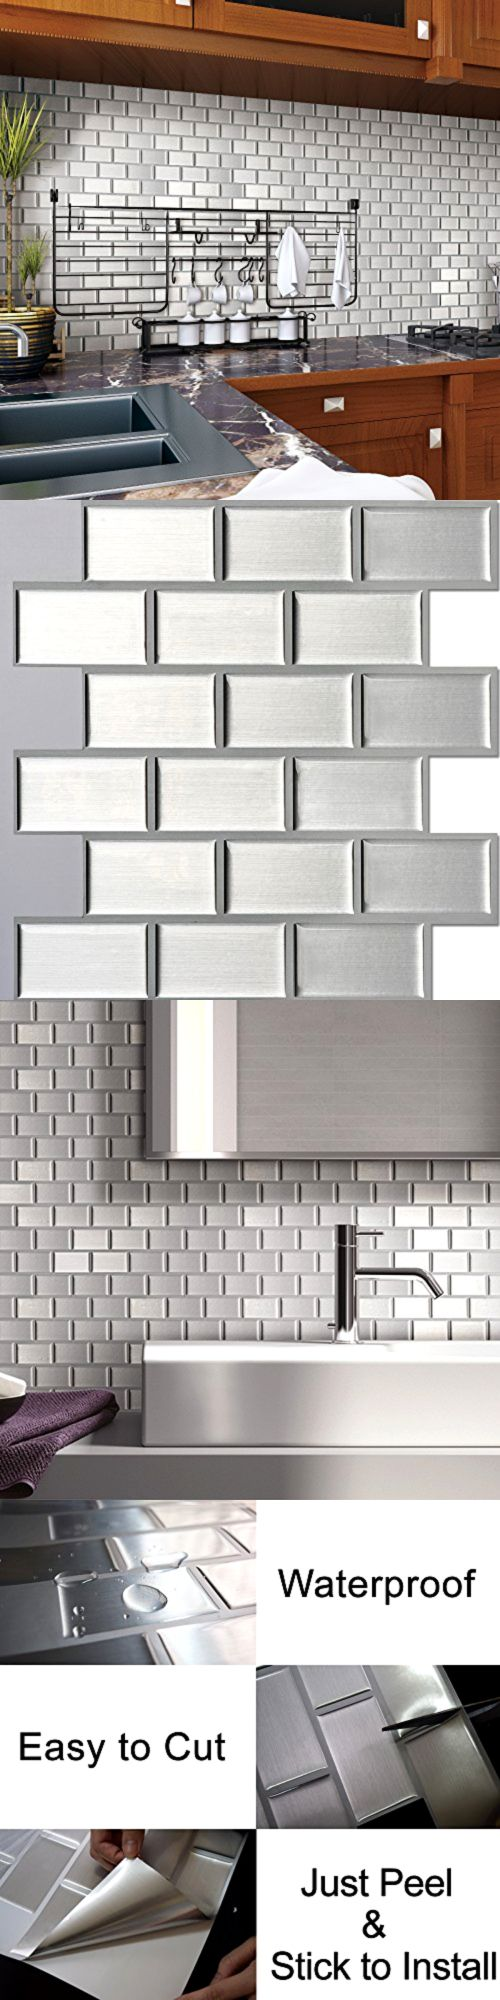 best 25 stick on tiles ideas only on pinterest kitchen walls other flooring 20604 peel stick self adhesive wall tile kitchen backsplash silver brick style pack